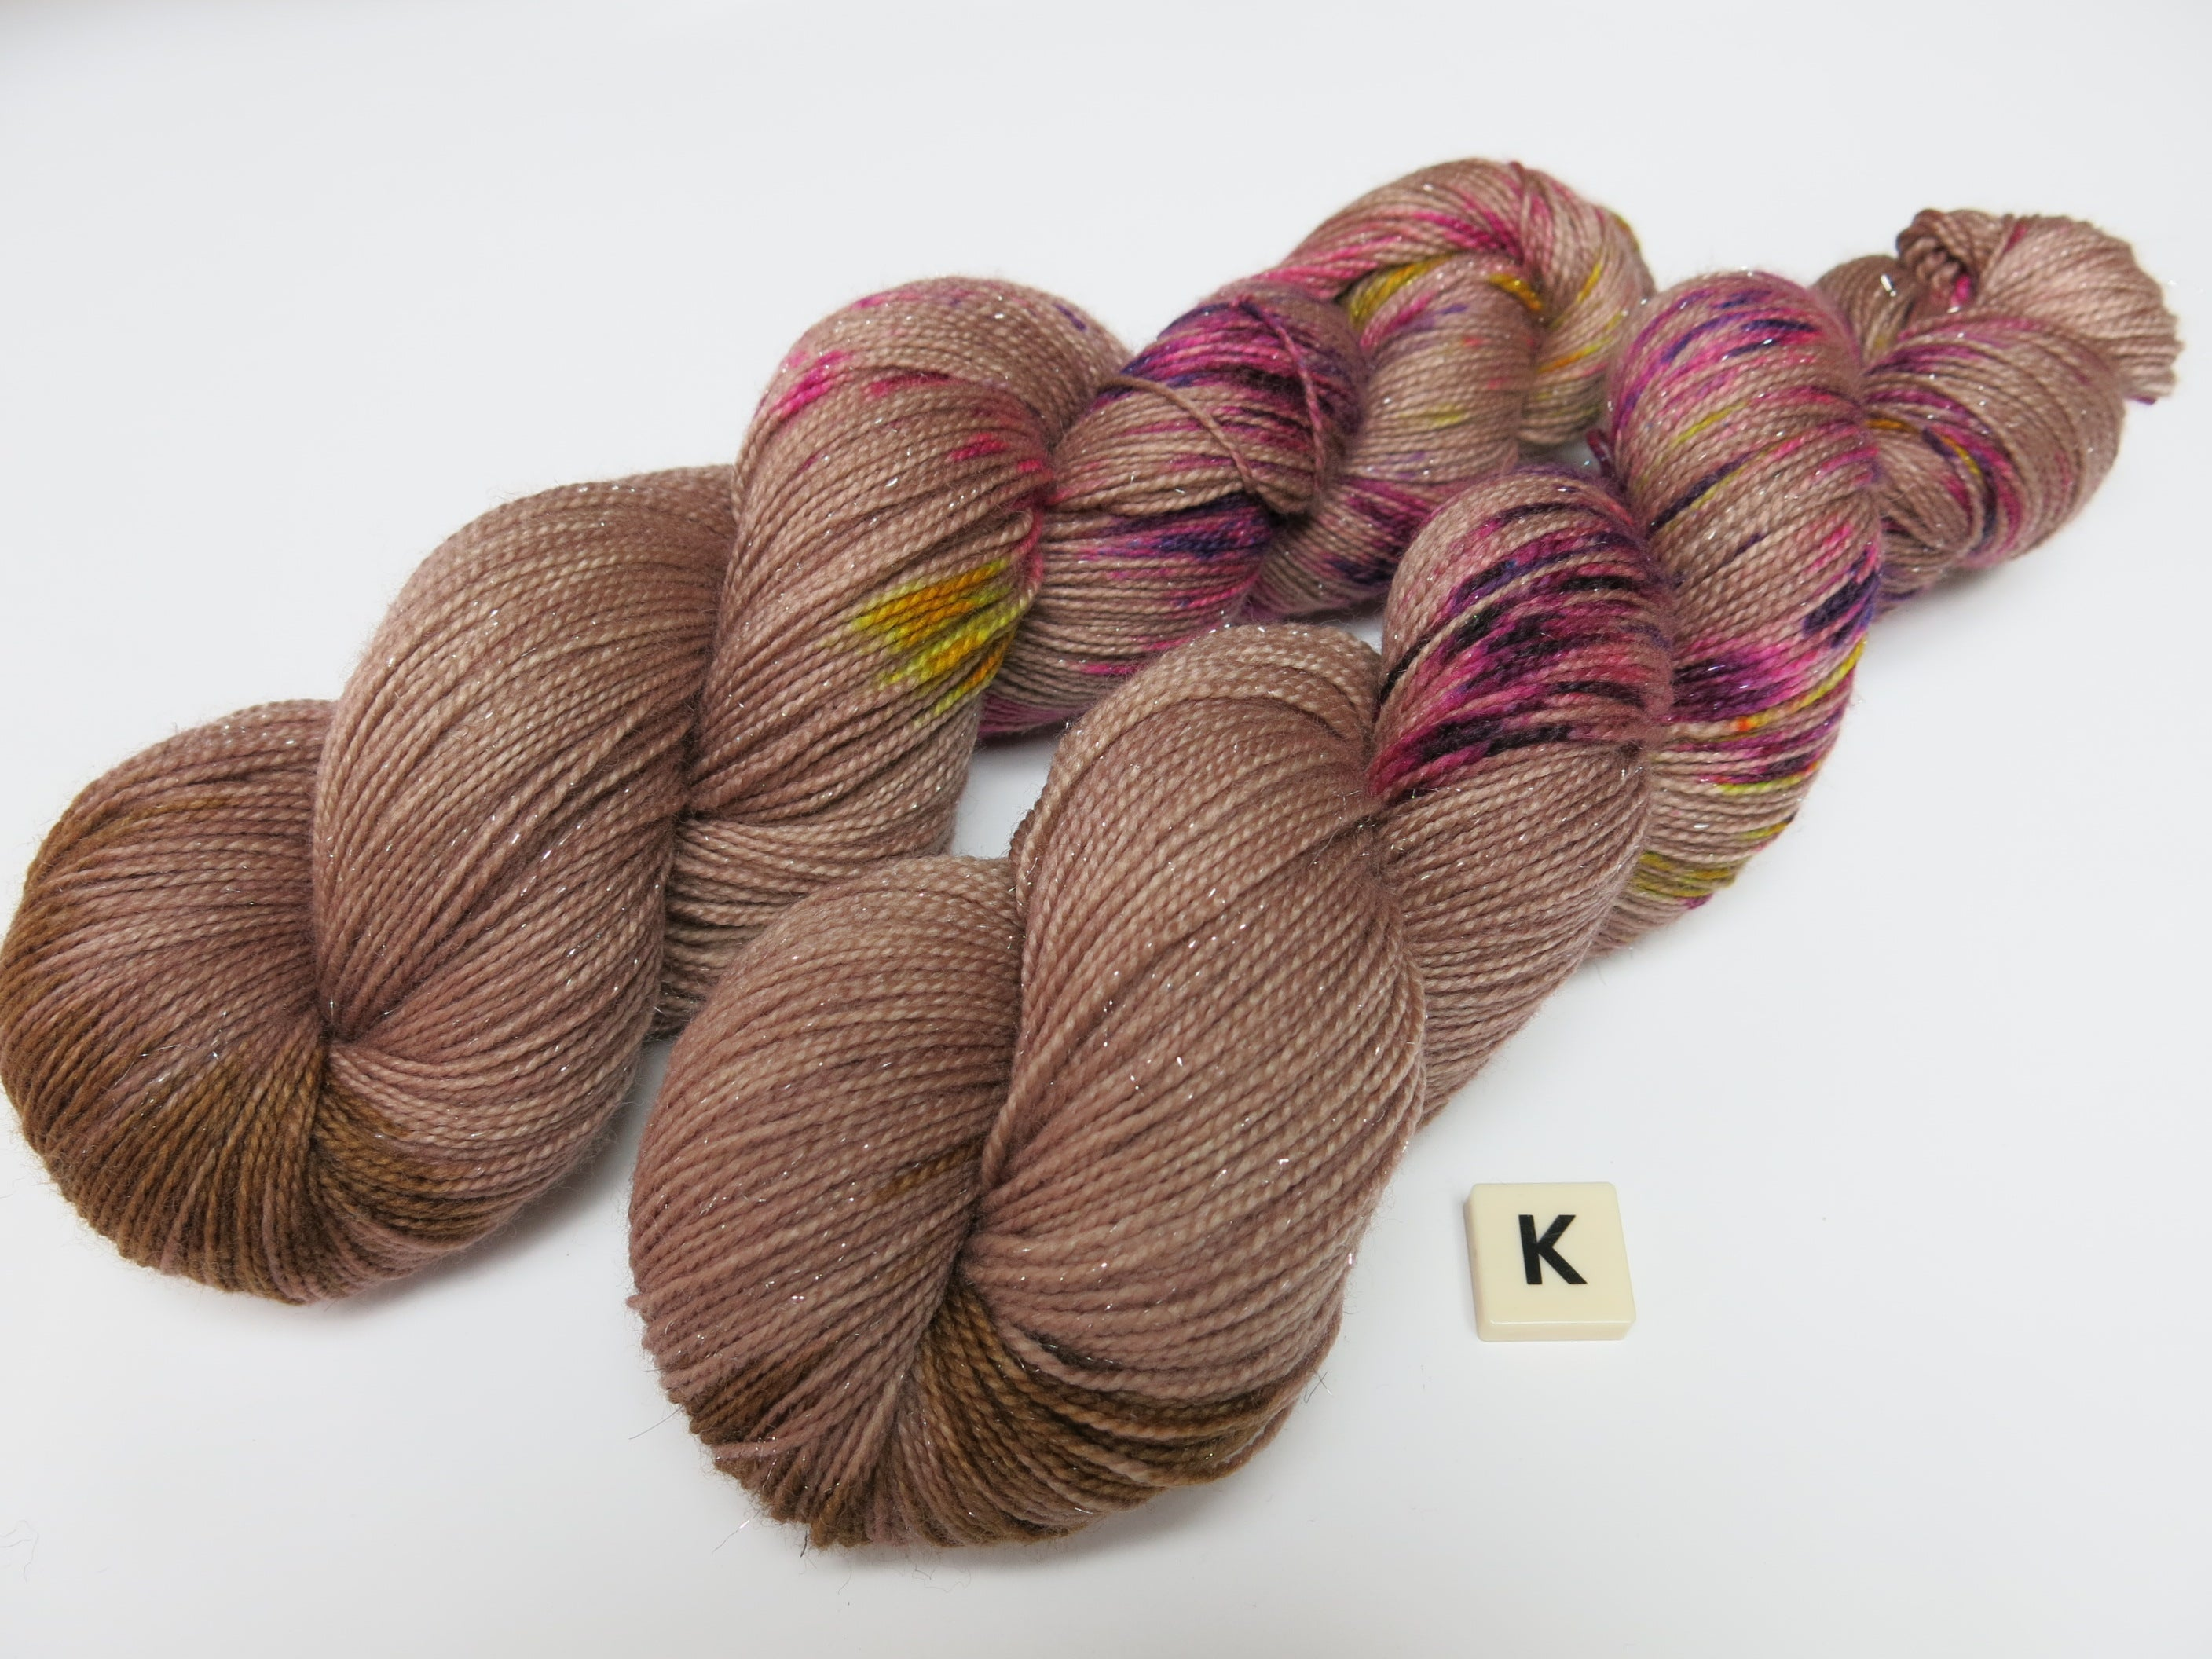 hand dyed yarn from my mama knits in scotland